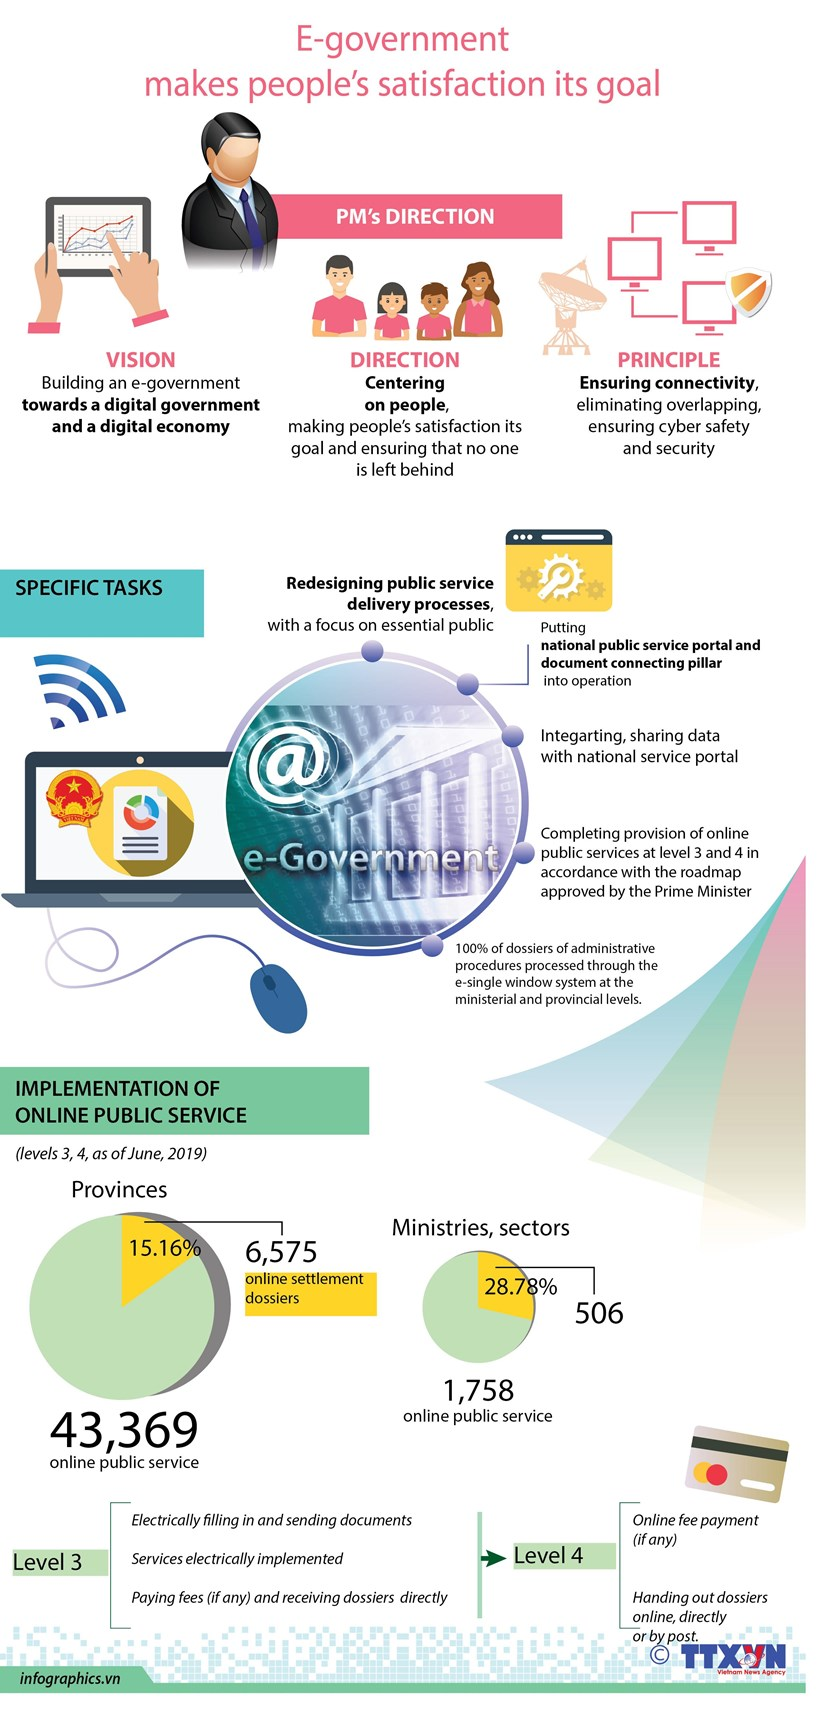 E-government makes people's satisfaction its goal hinh anh 1